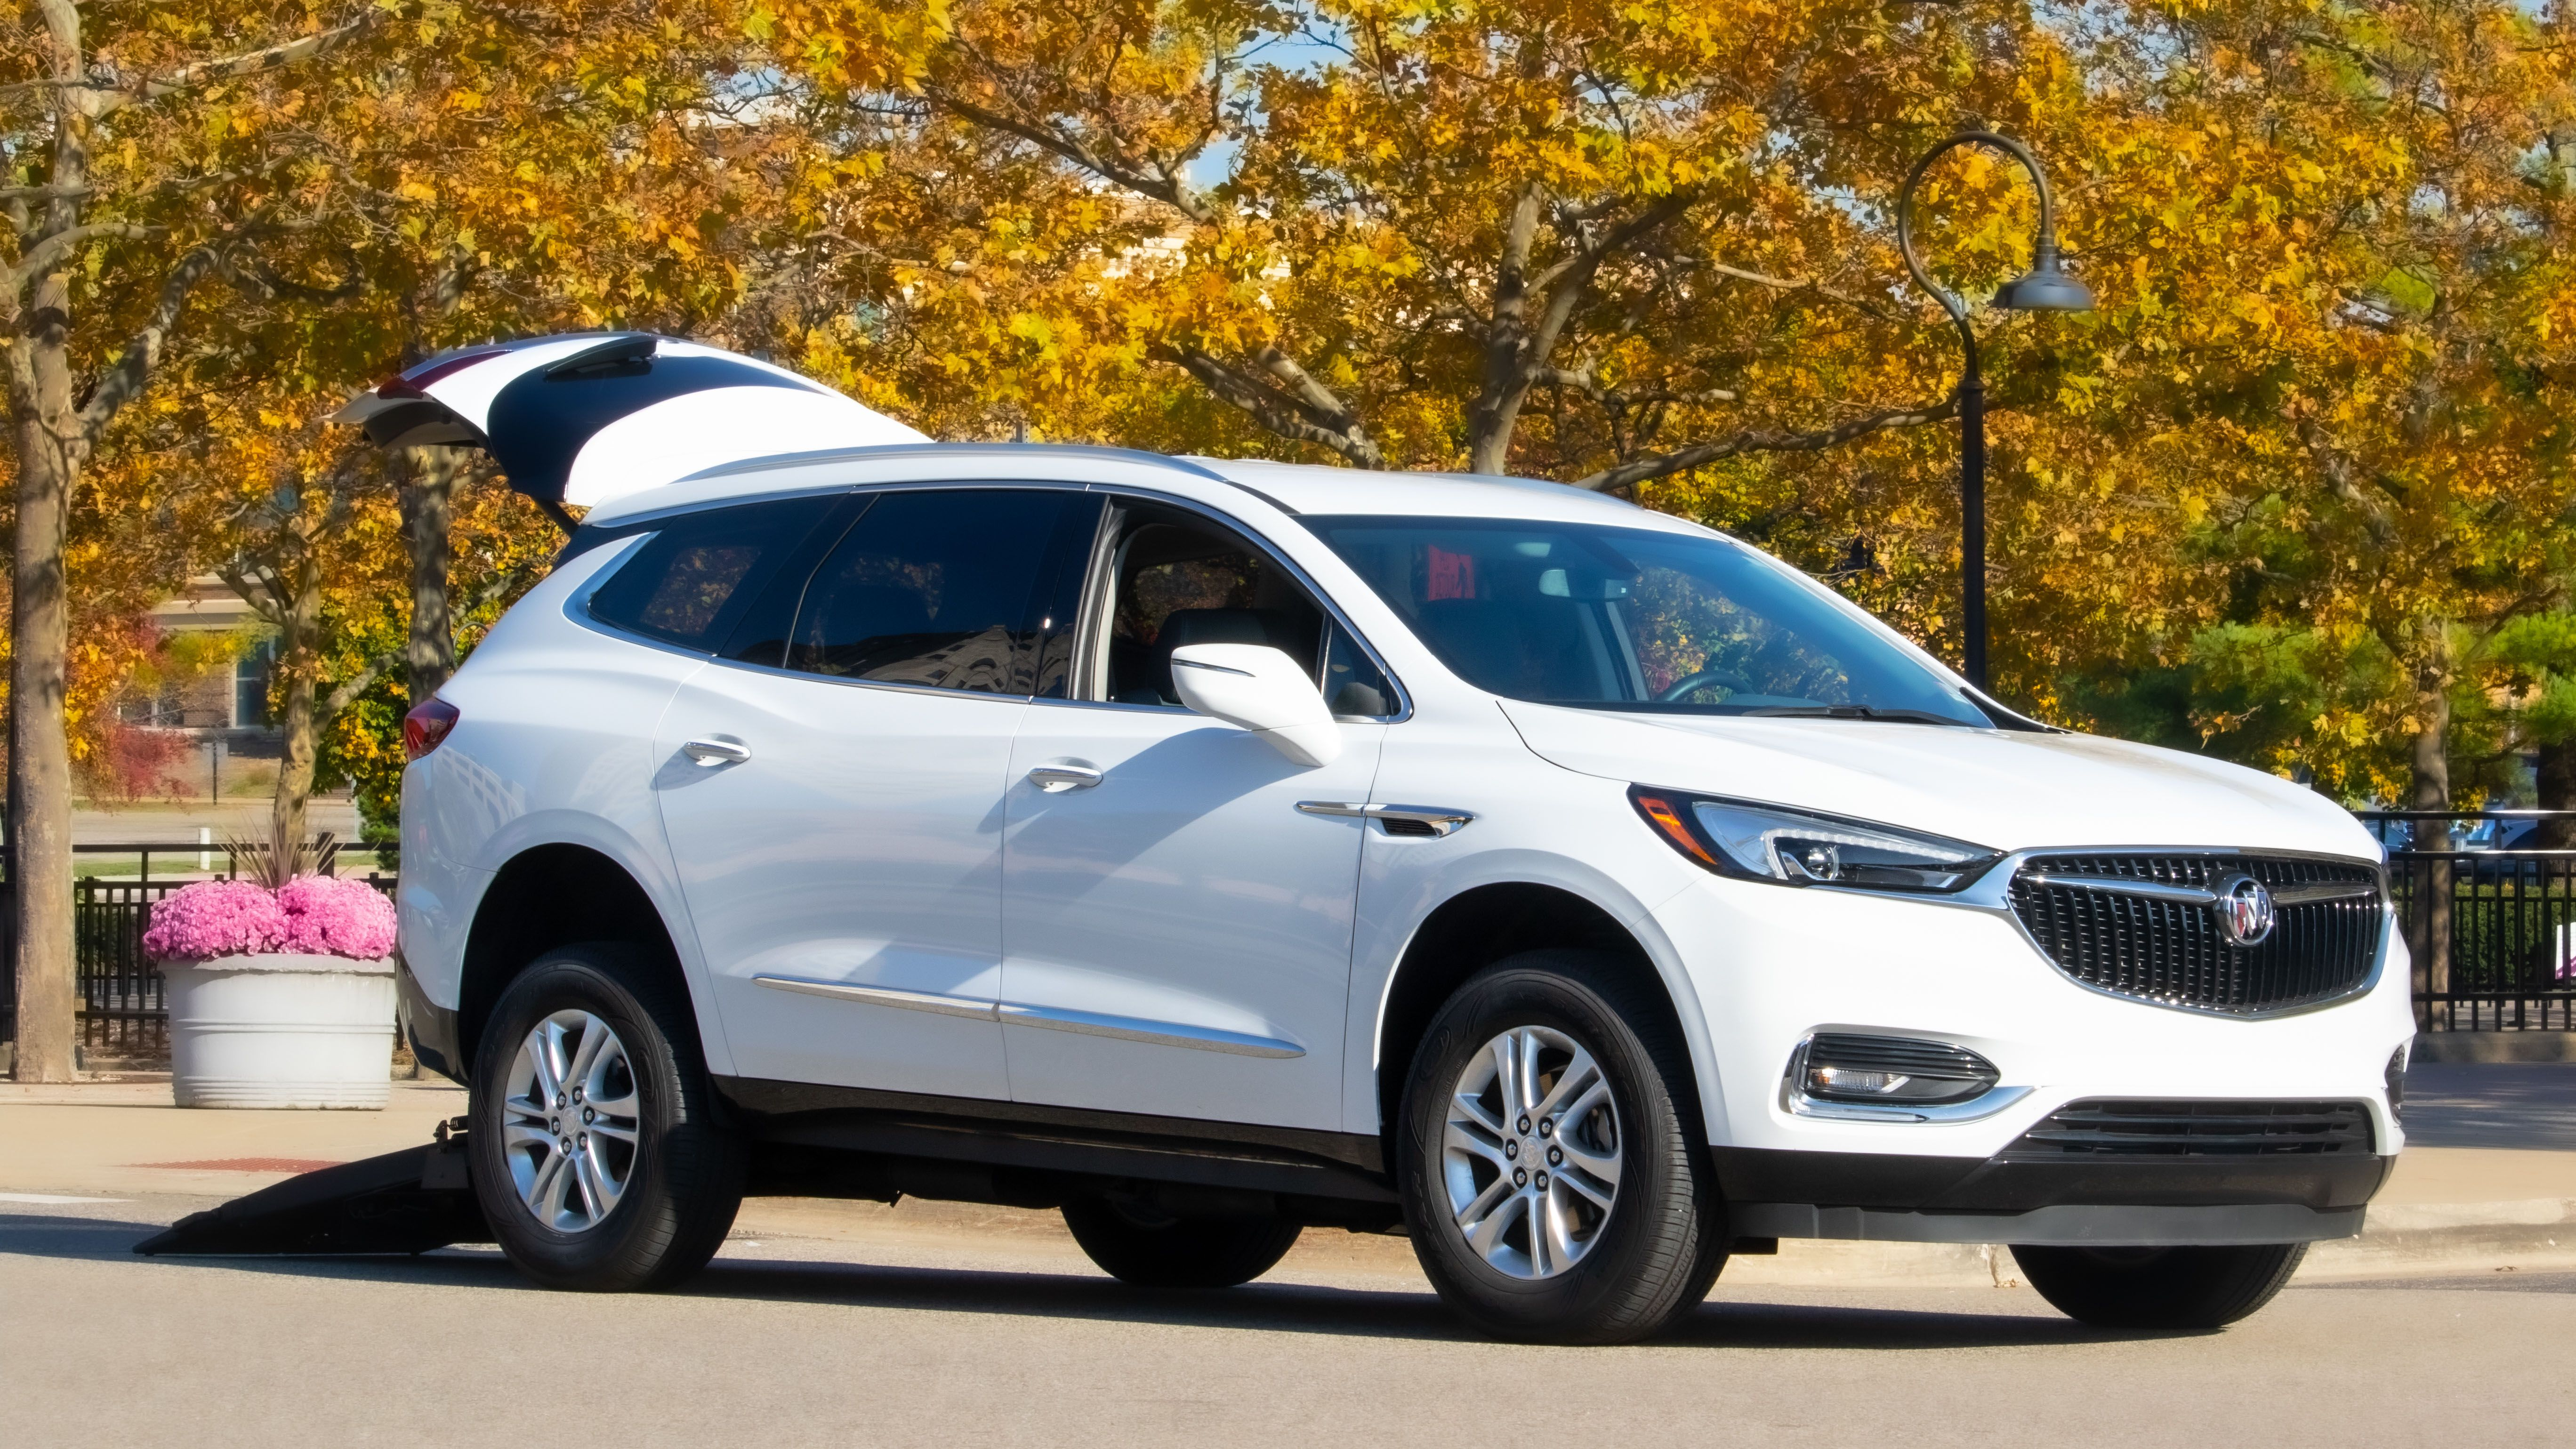 This Mid Size Luxury Buick Enclave Suv Could Be Exactly What You